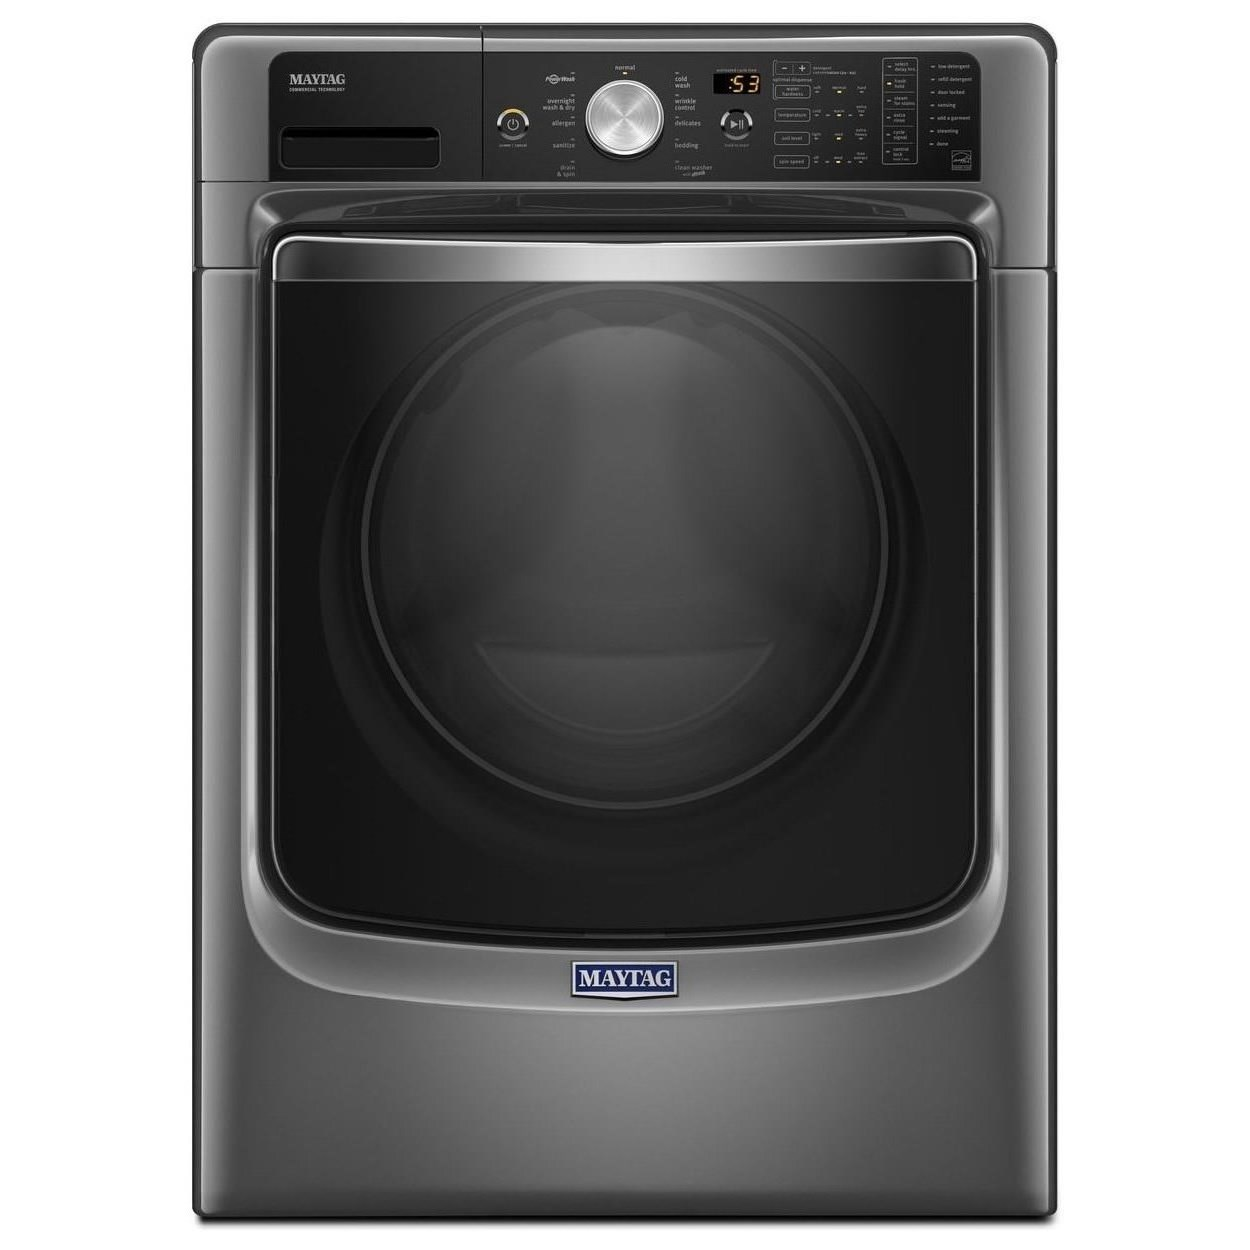 Maytag Mhw8200fcfront Load Washer With Optimal Dose